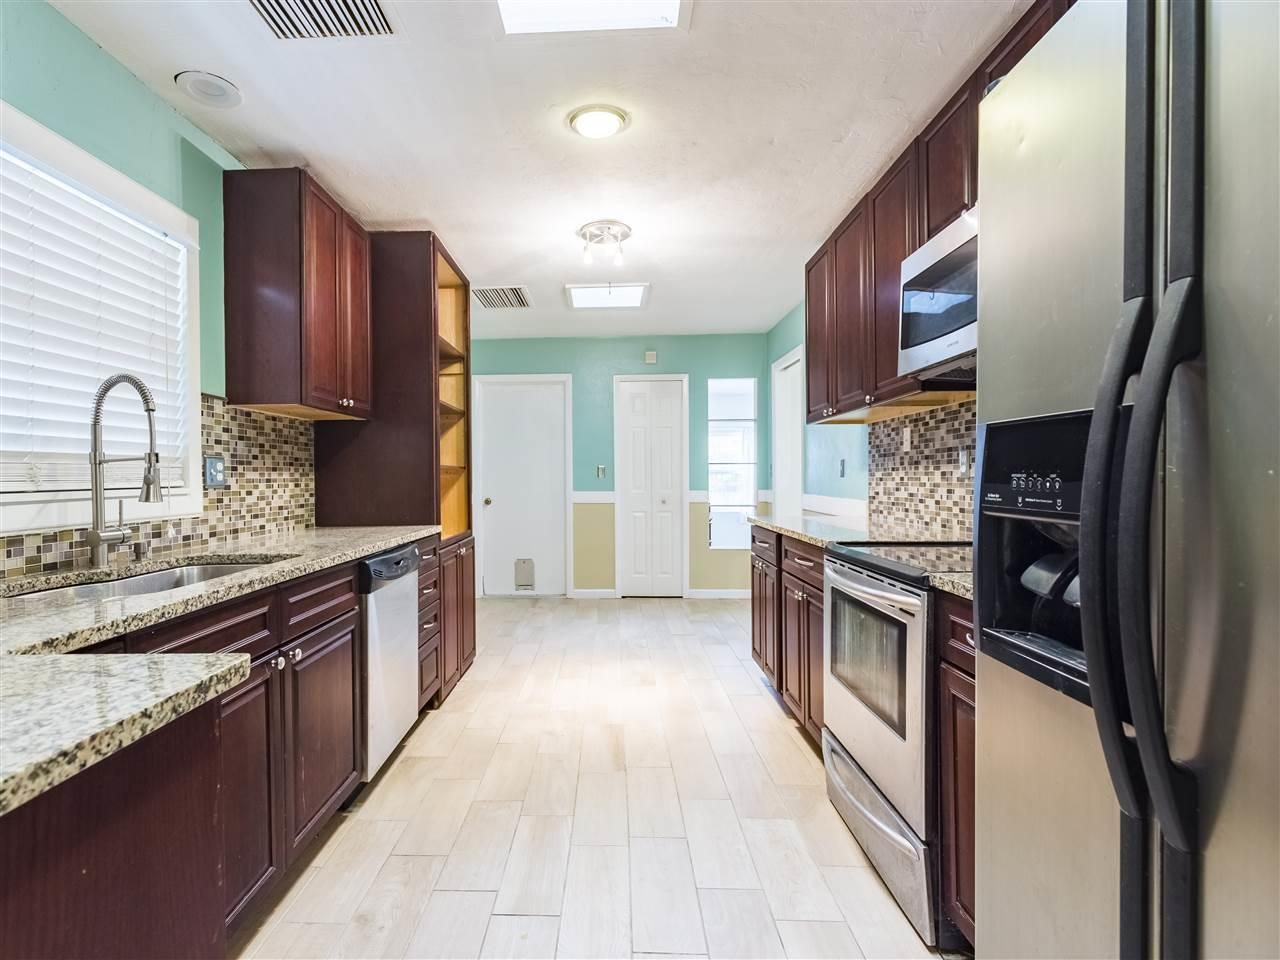 3713 NW 107th Terrace, Gainesville, FL 32606 (MLS #402957) :: Thomas Group Realty